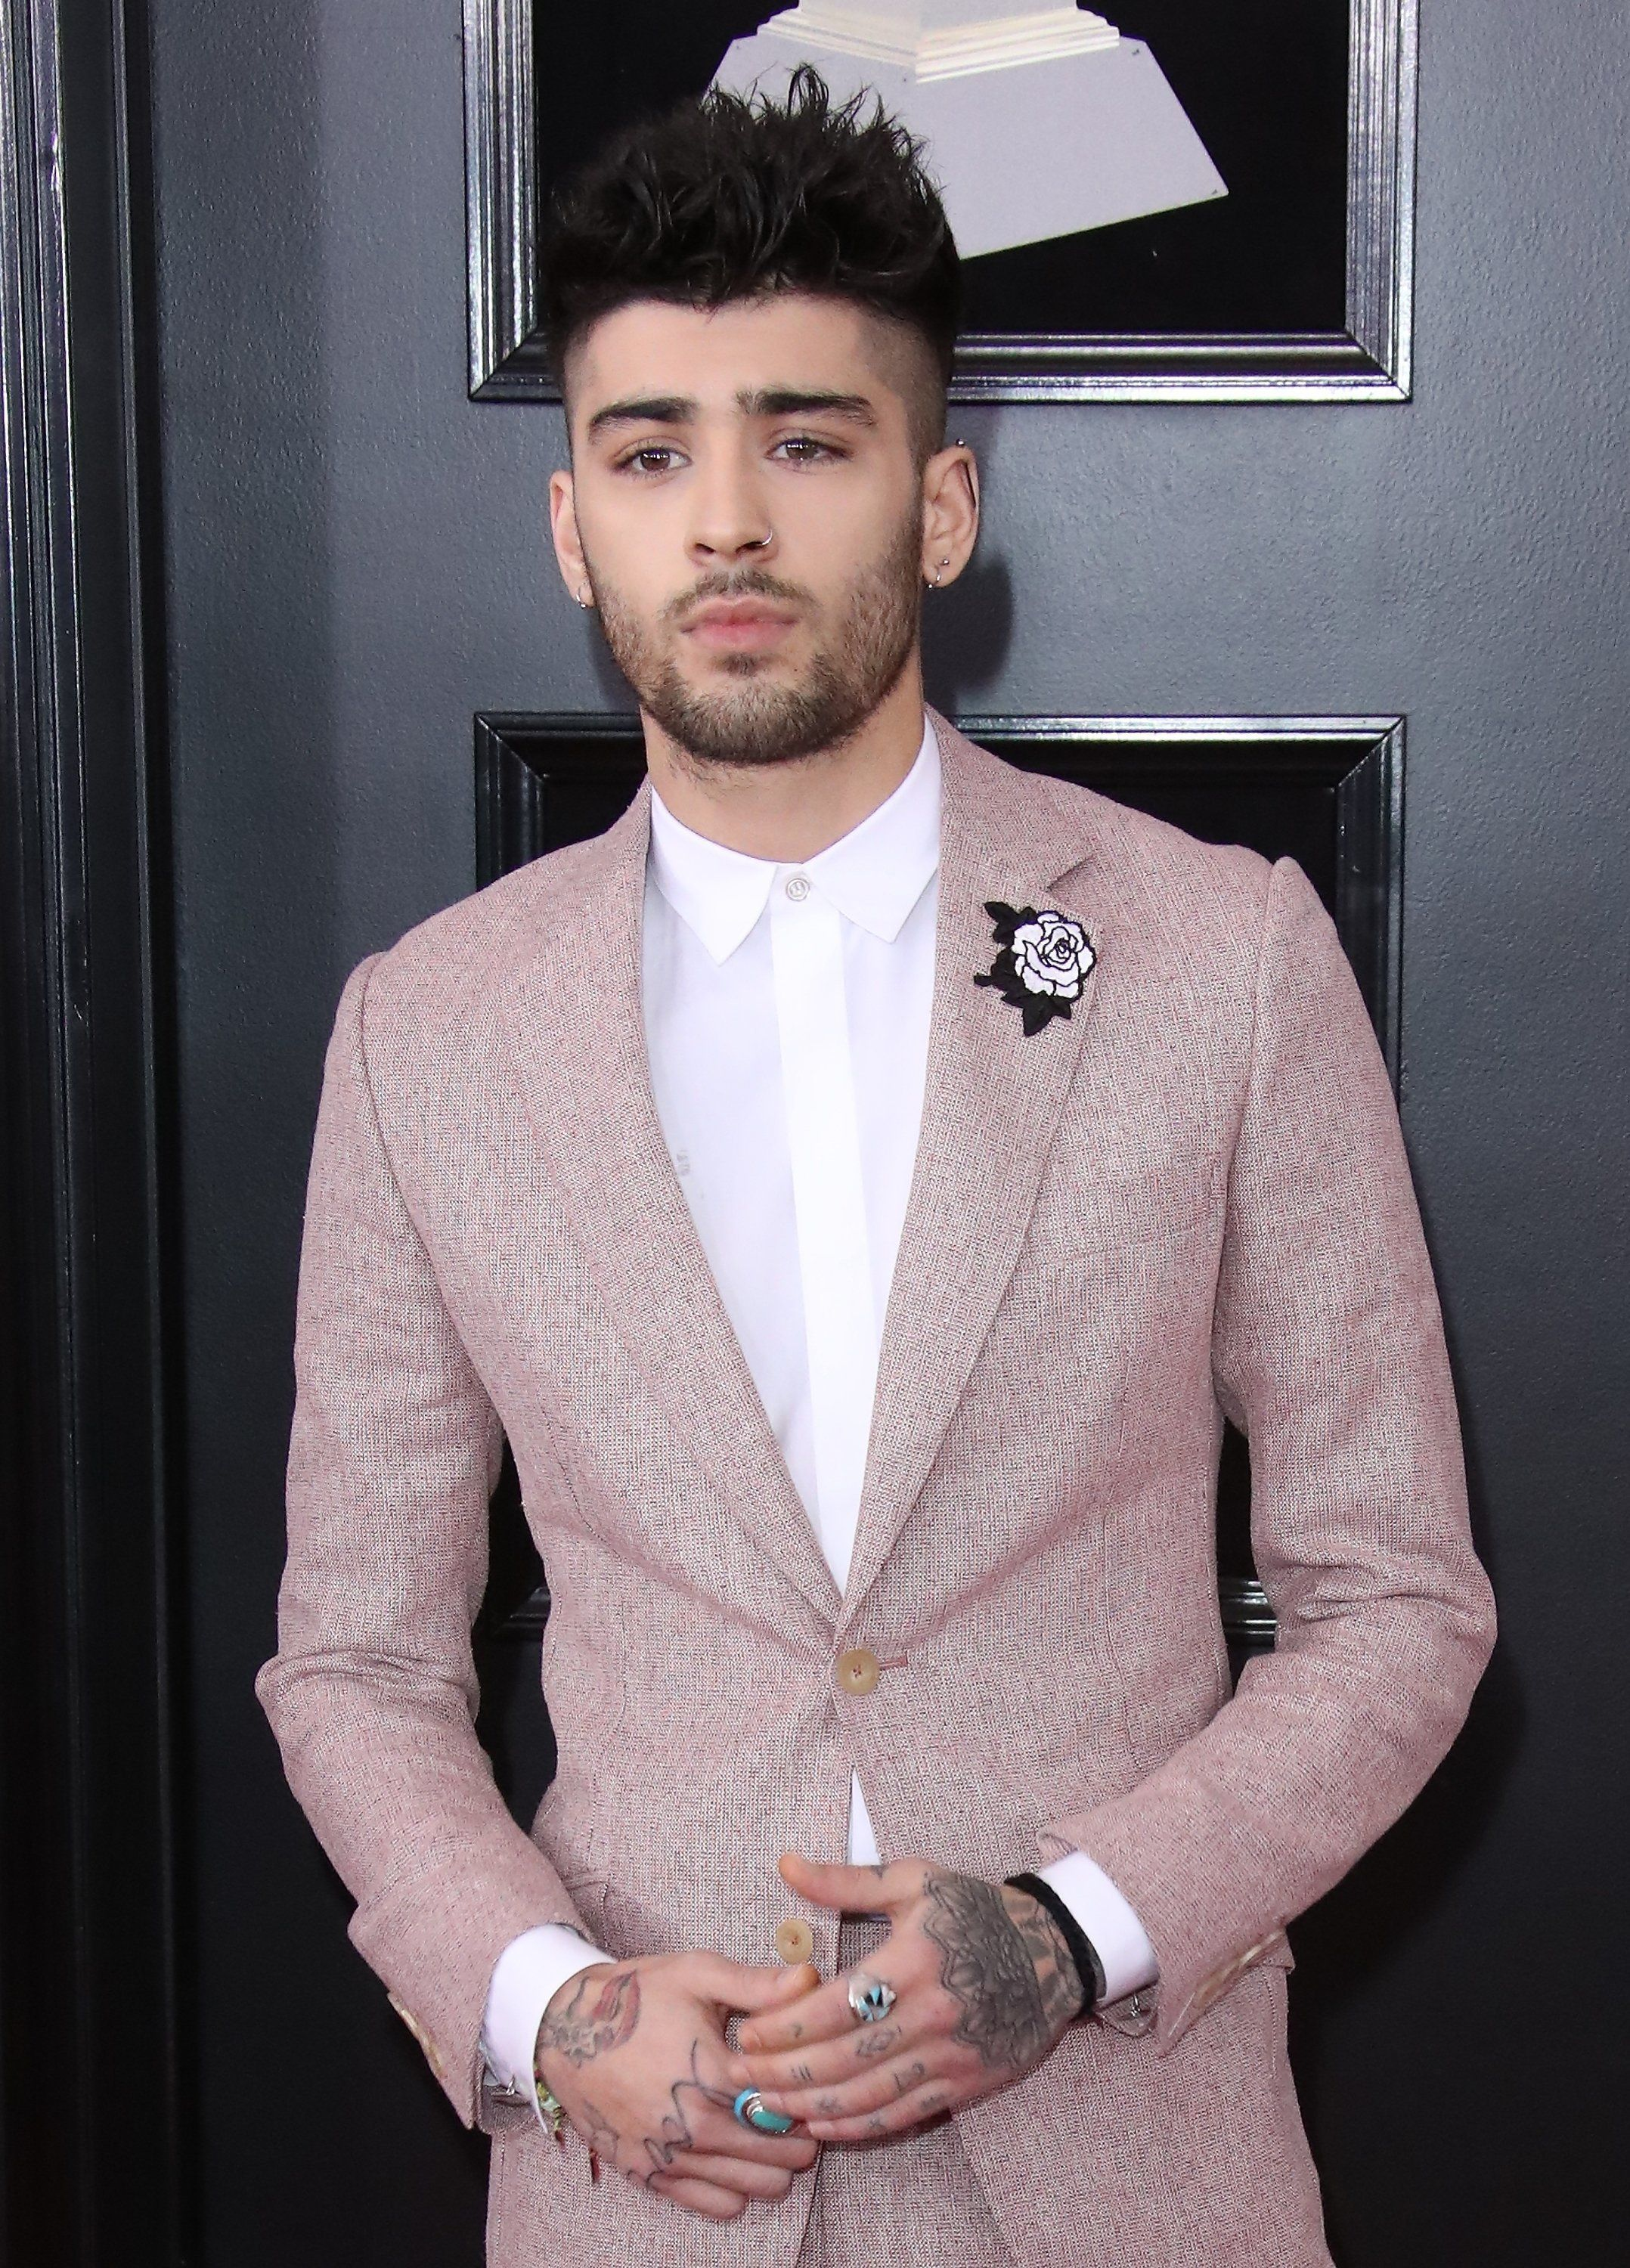 NEW YORK, NY - JANUARY 28: Zayn Malik arrives at the 60th Annual GRAMMY Awards at Madison Square Garden on January 28, 2018 in New York City. (Photo by Dan MacMedan/WireImage)